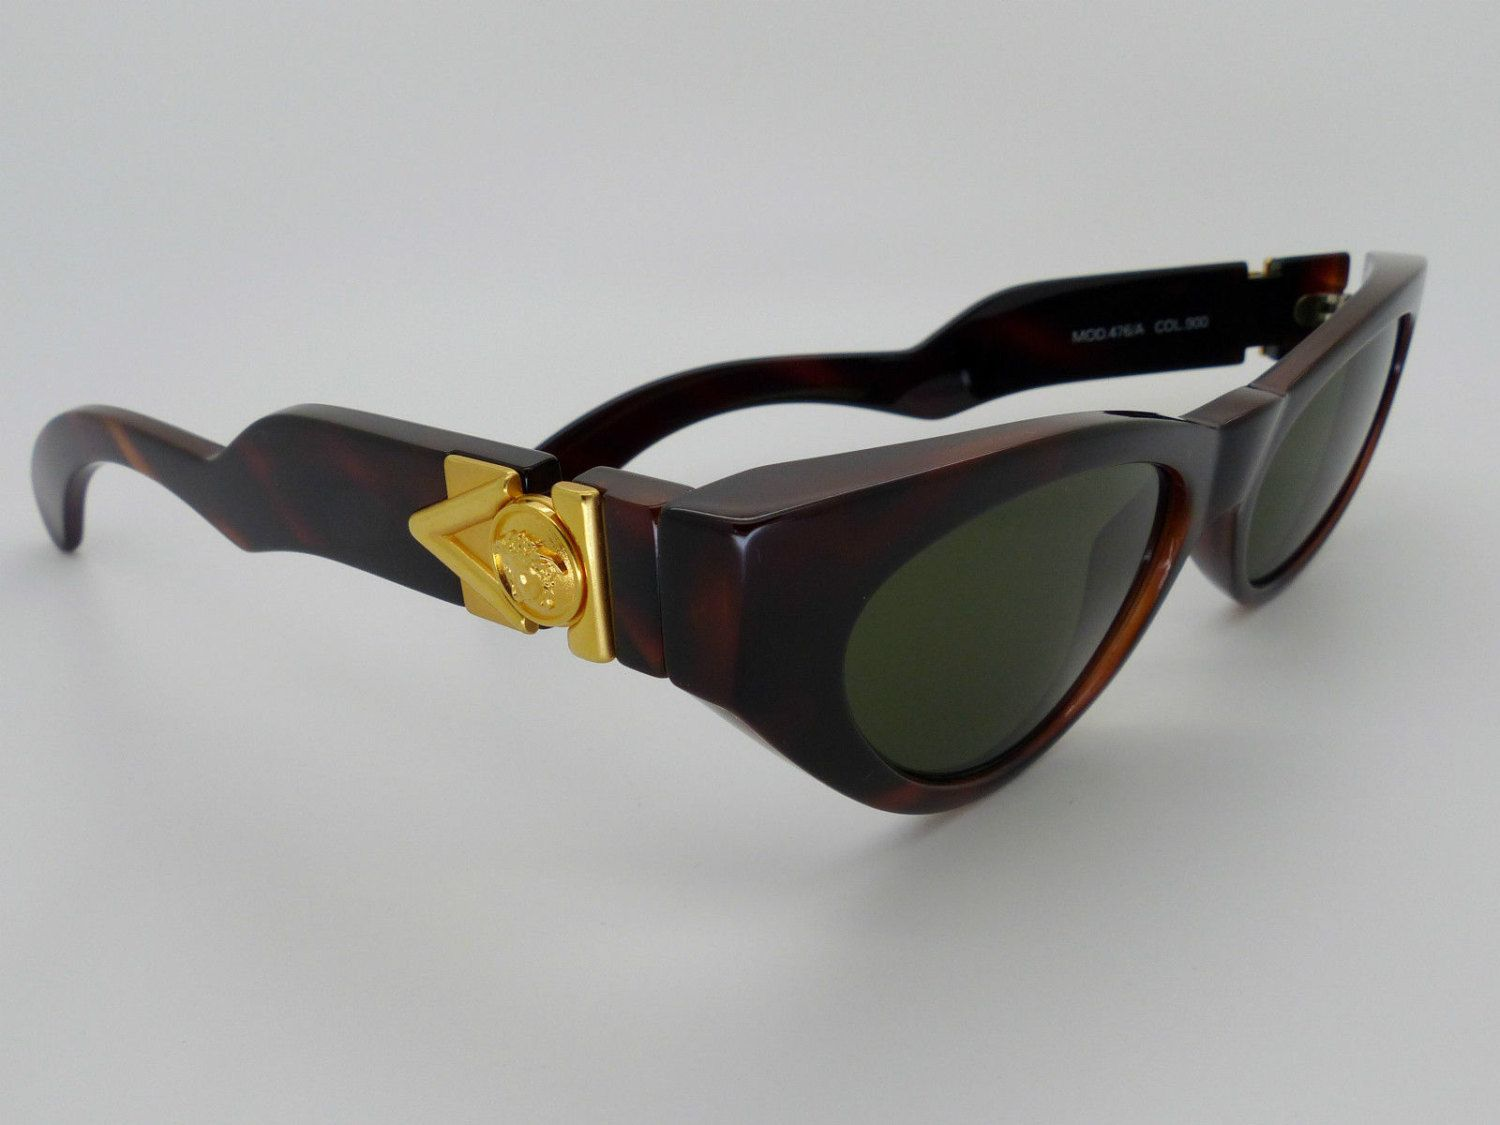 856f3c5f64a6 Genuine Rare Vintage Gianni Versace Sunglasses Mod 476 A Col 900 by VSOx on  Etsy